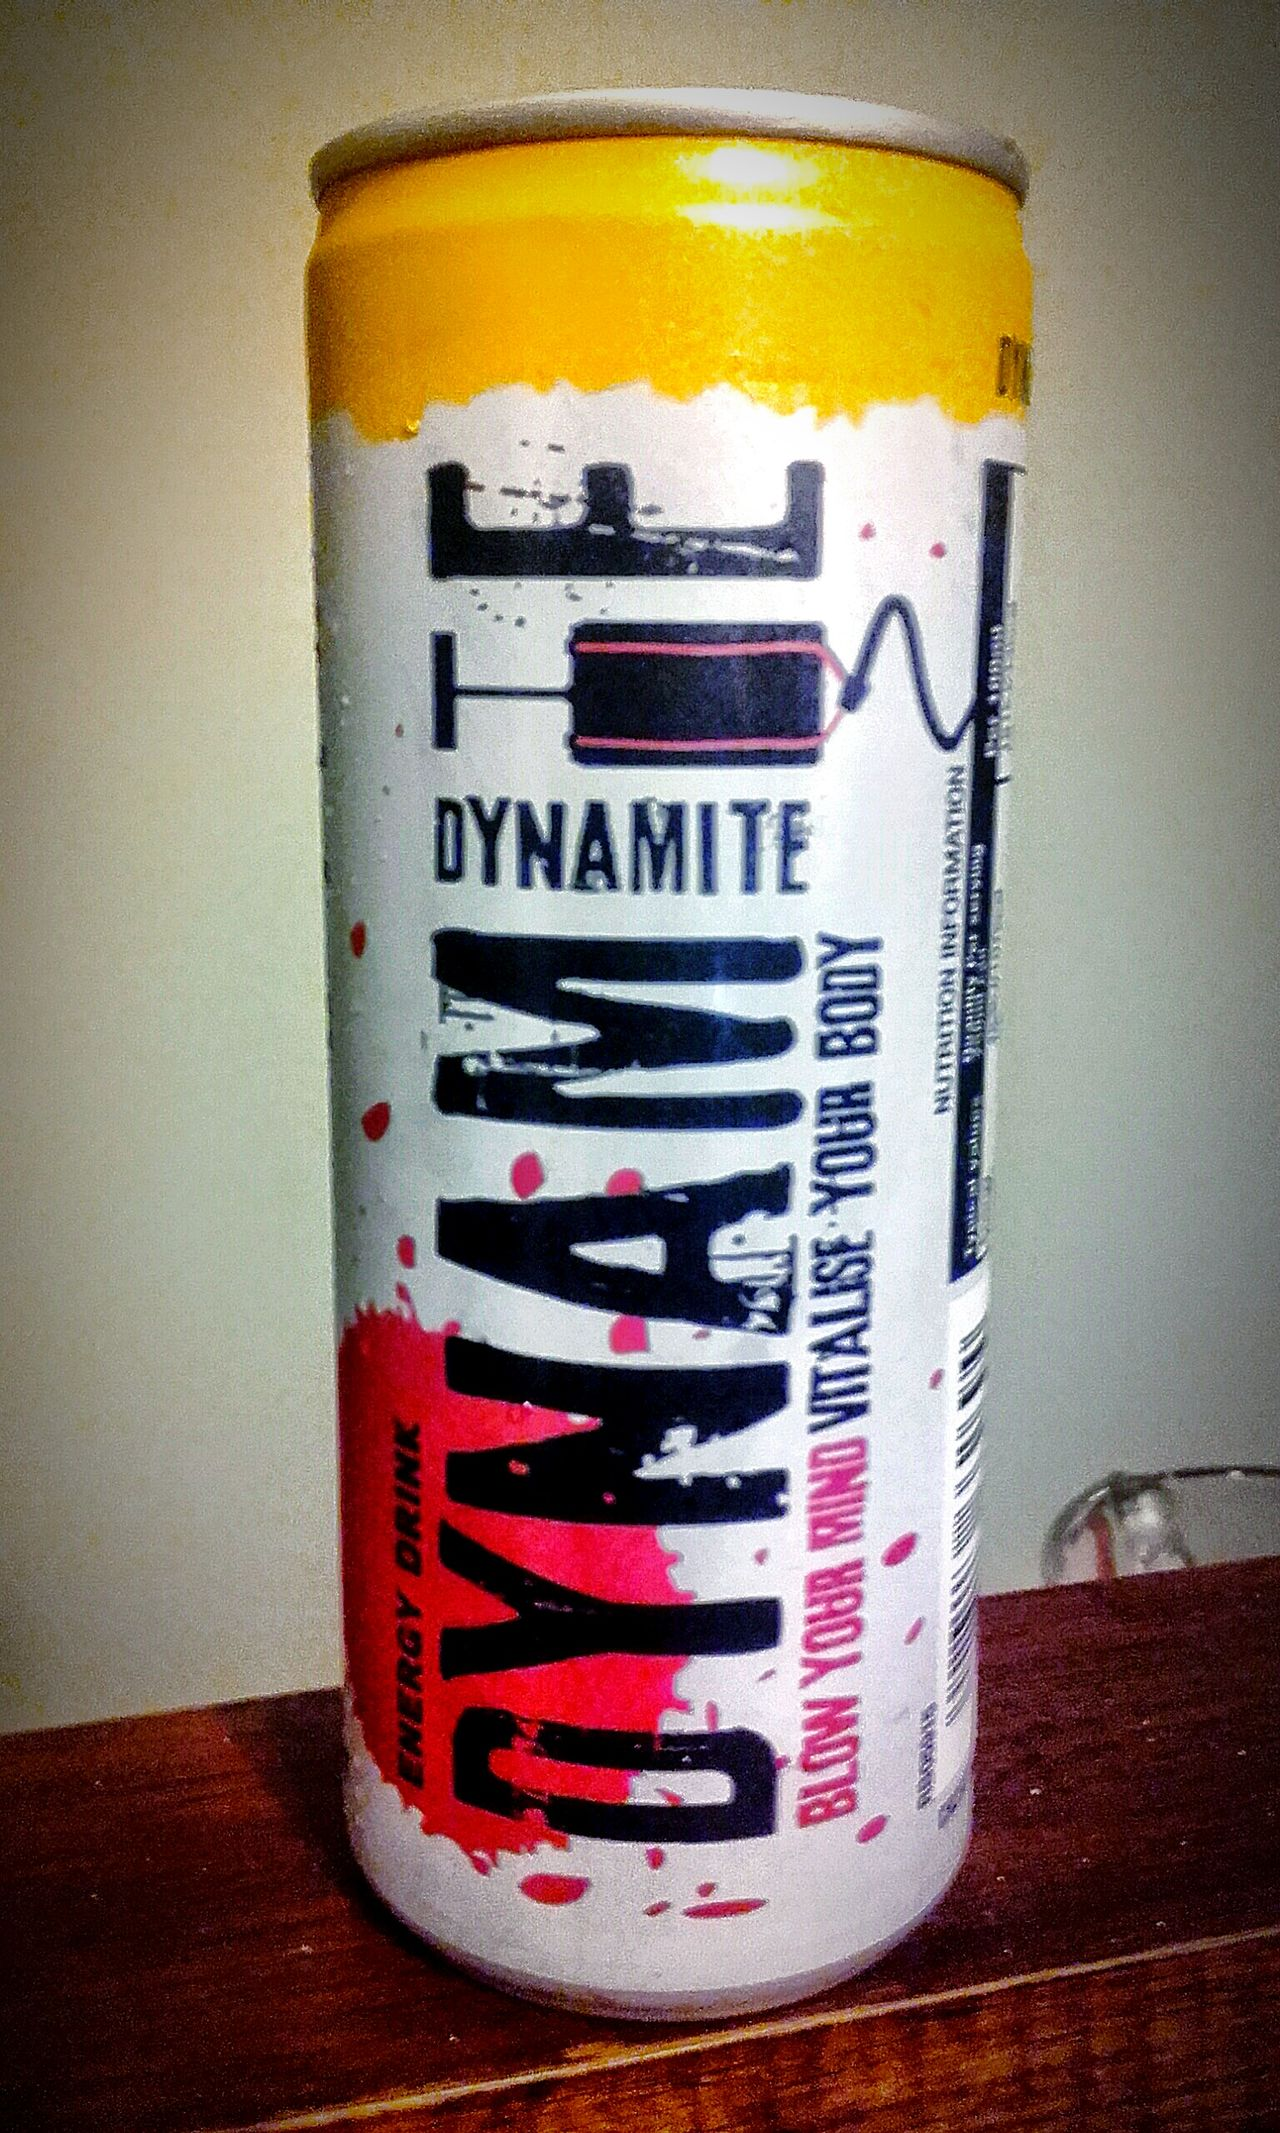 Dynamite T N T Energydrink Energy Drink Energydrinks Dynamite Energy Drinks Tnt Energy Drinks Energyboost Drinkcans Drink Can Drinkcan Drink Cans Aluminiumcans Aluminium Cans Aluminum Can Aluminium Can Aluminiumcan Blow Your Mind EnergyDrinkCans Vitalise Energy Drink Cans EnergyBooster Bang Explosive